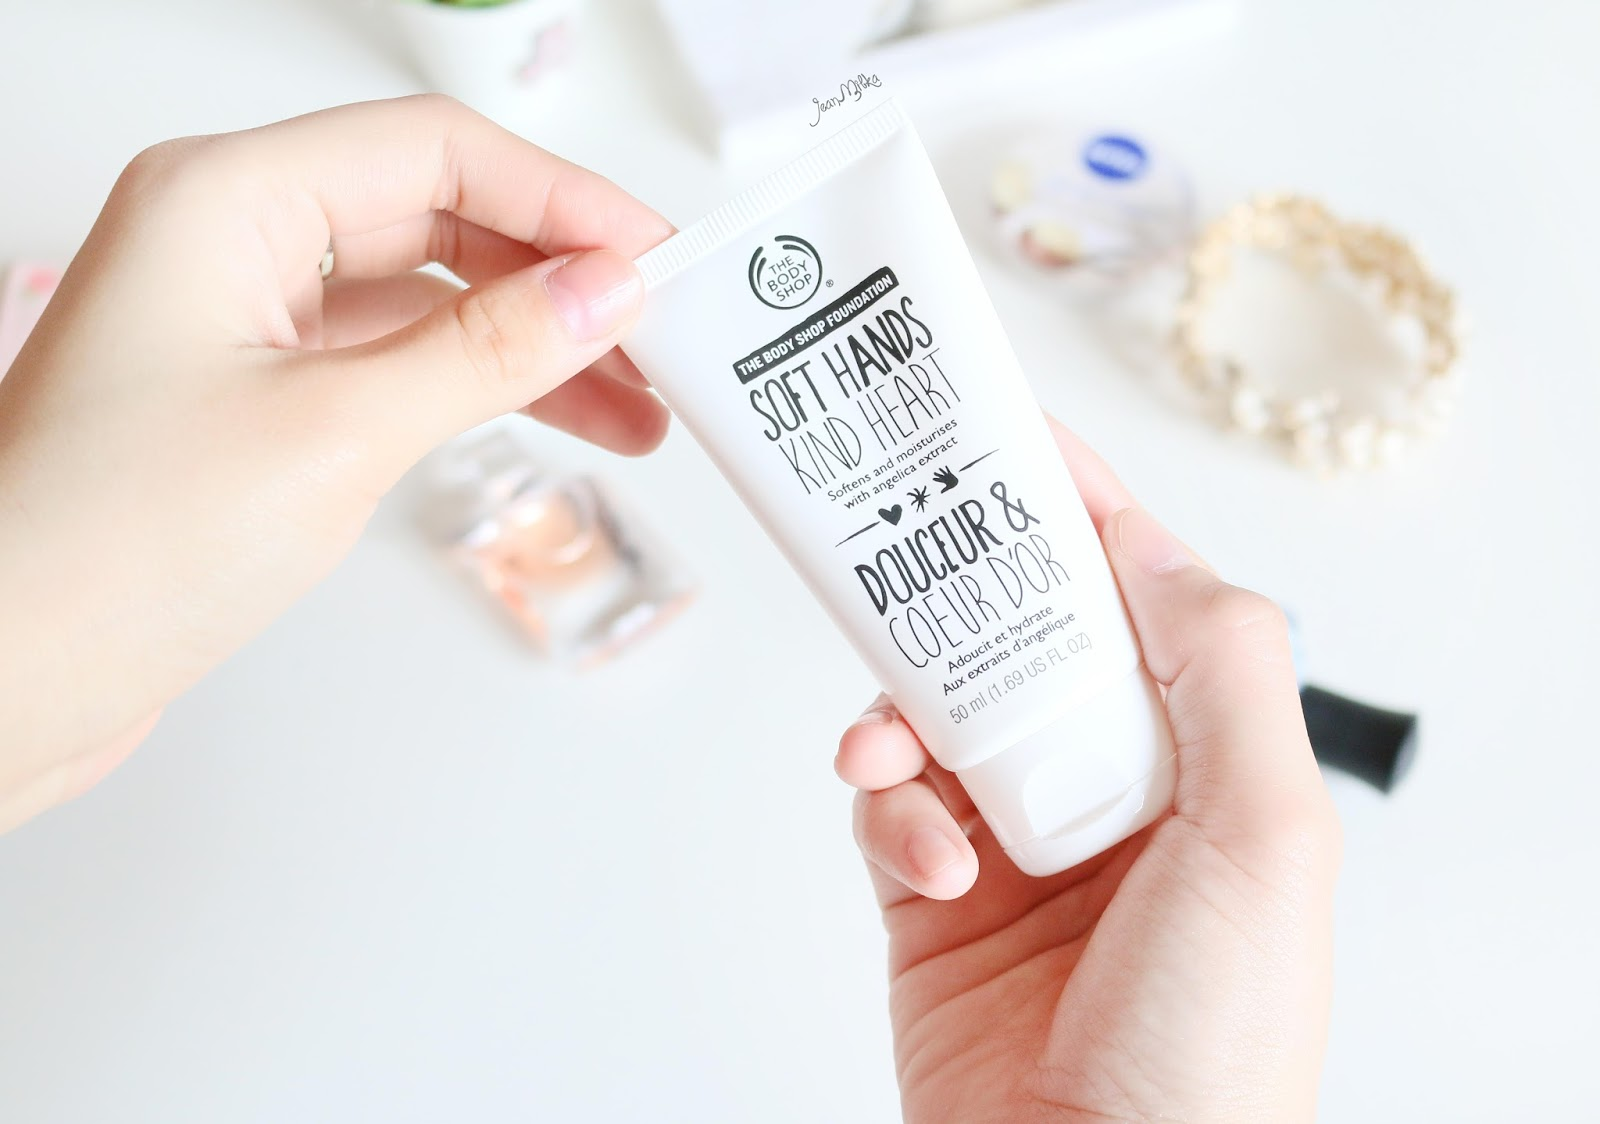 the body shop, body shop, indonesia, soft hands kind heart, omah munir, charity, hand cream, review, blog, beauty